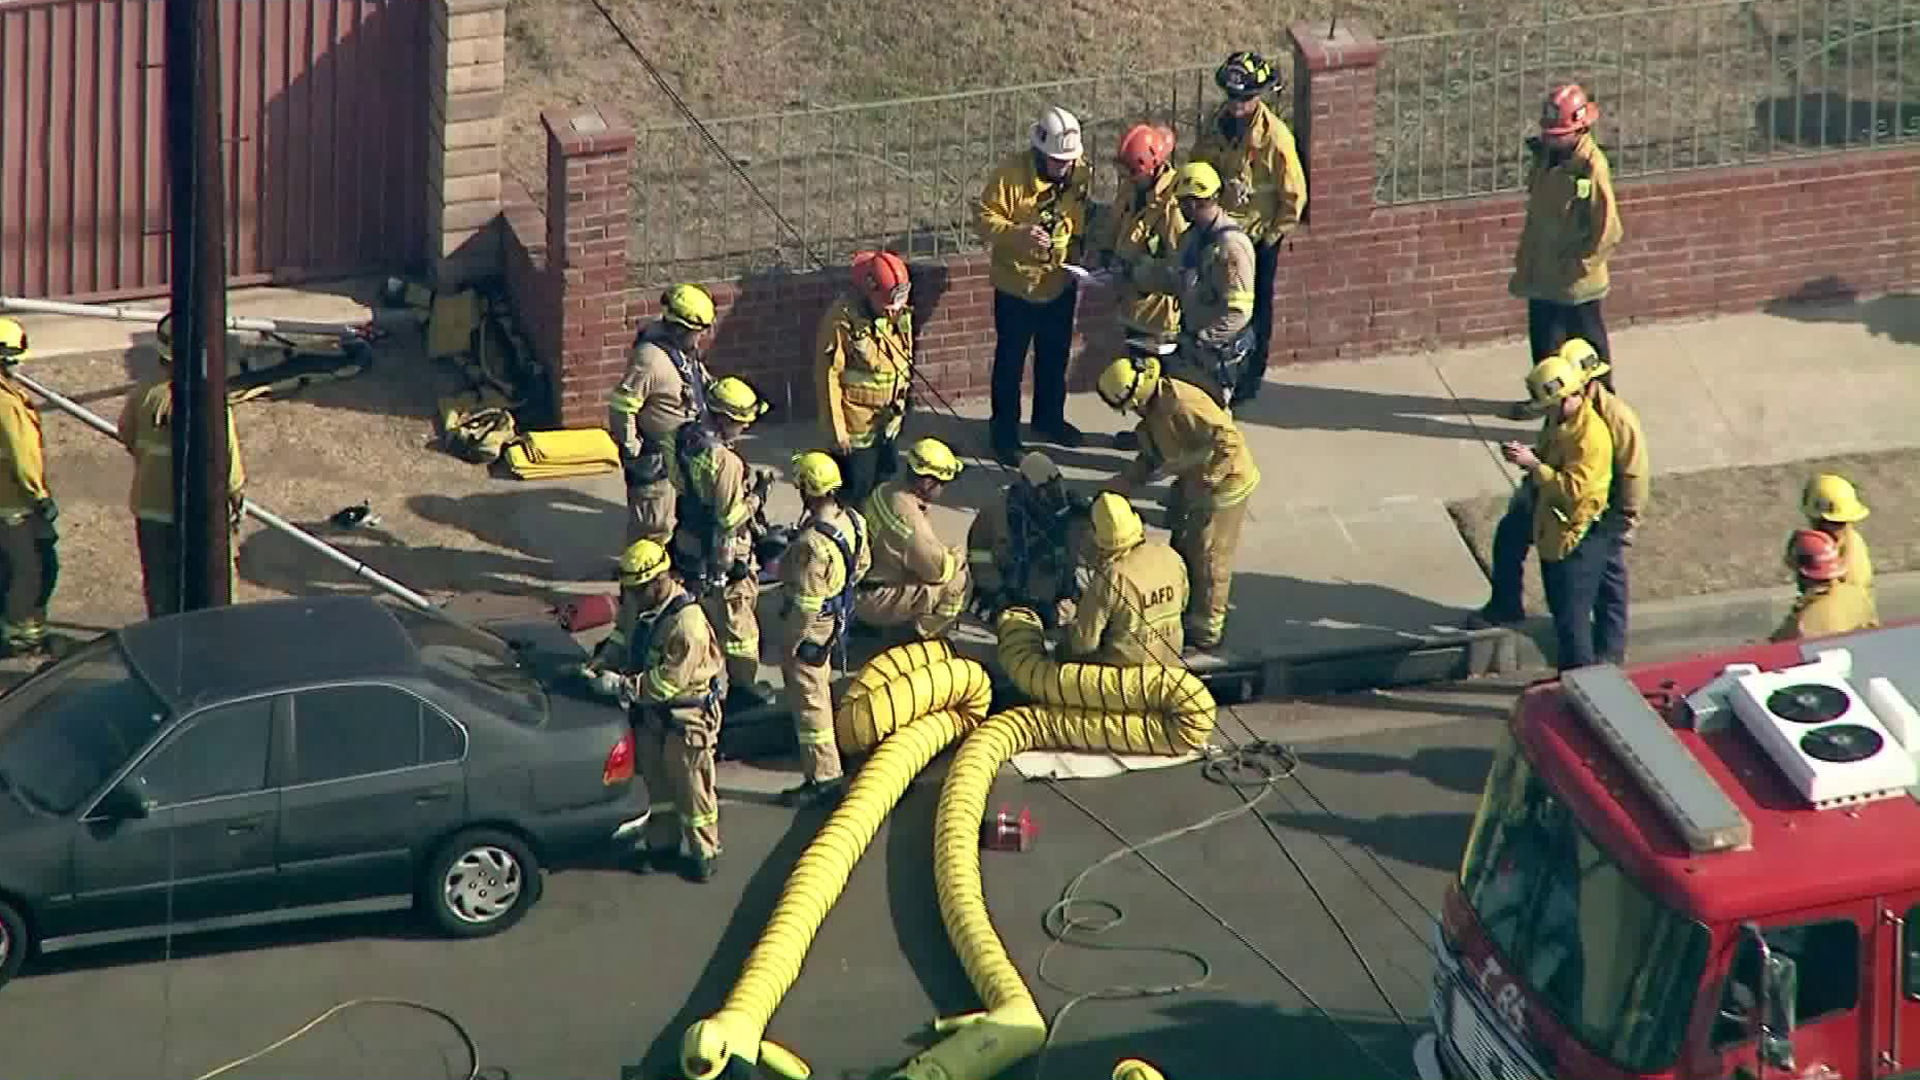 The Los Angeles Fire Department worked on extricating an individual stuck in a sewer pipe in Wilmington on Nov. 7, 2019. (Credit: Sky5)